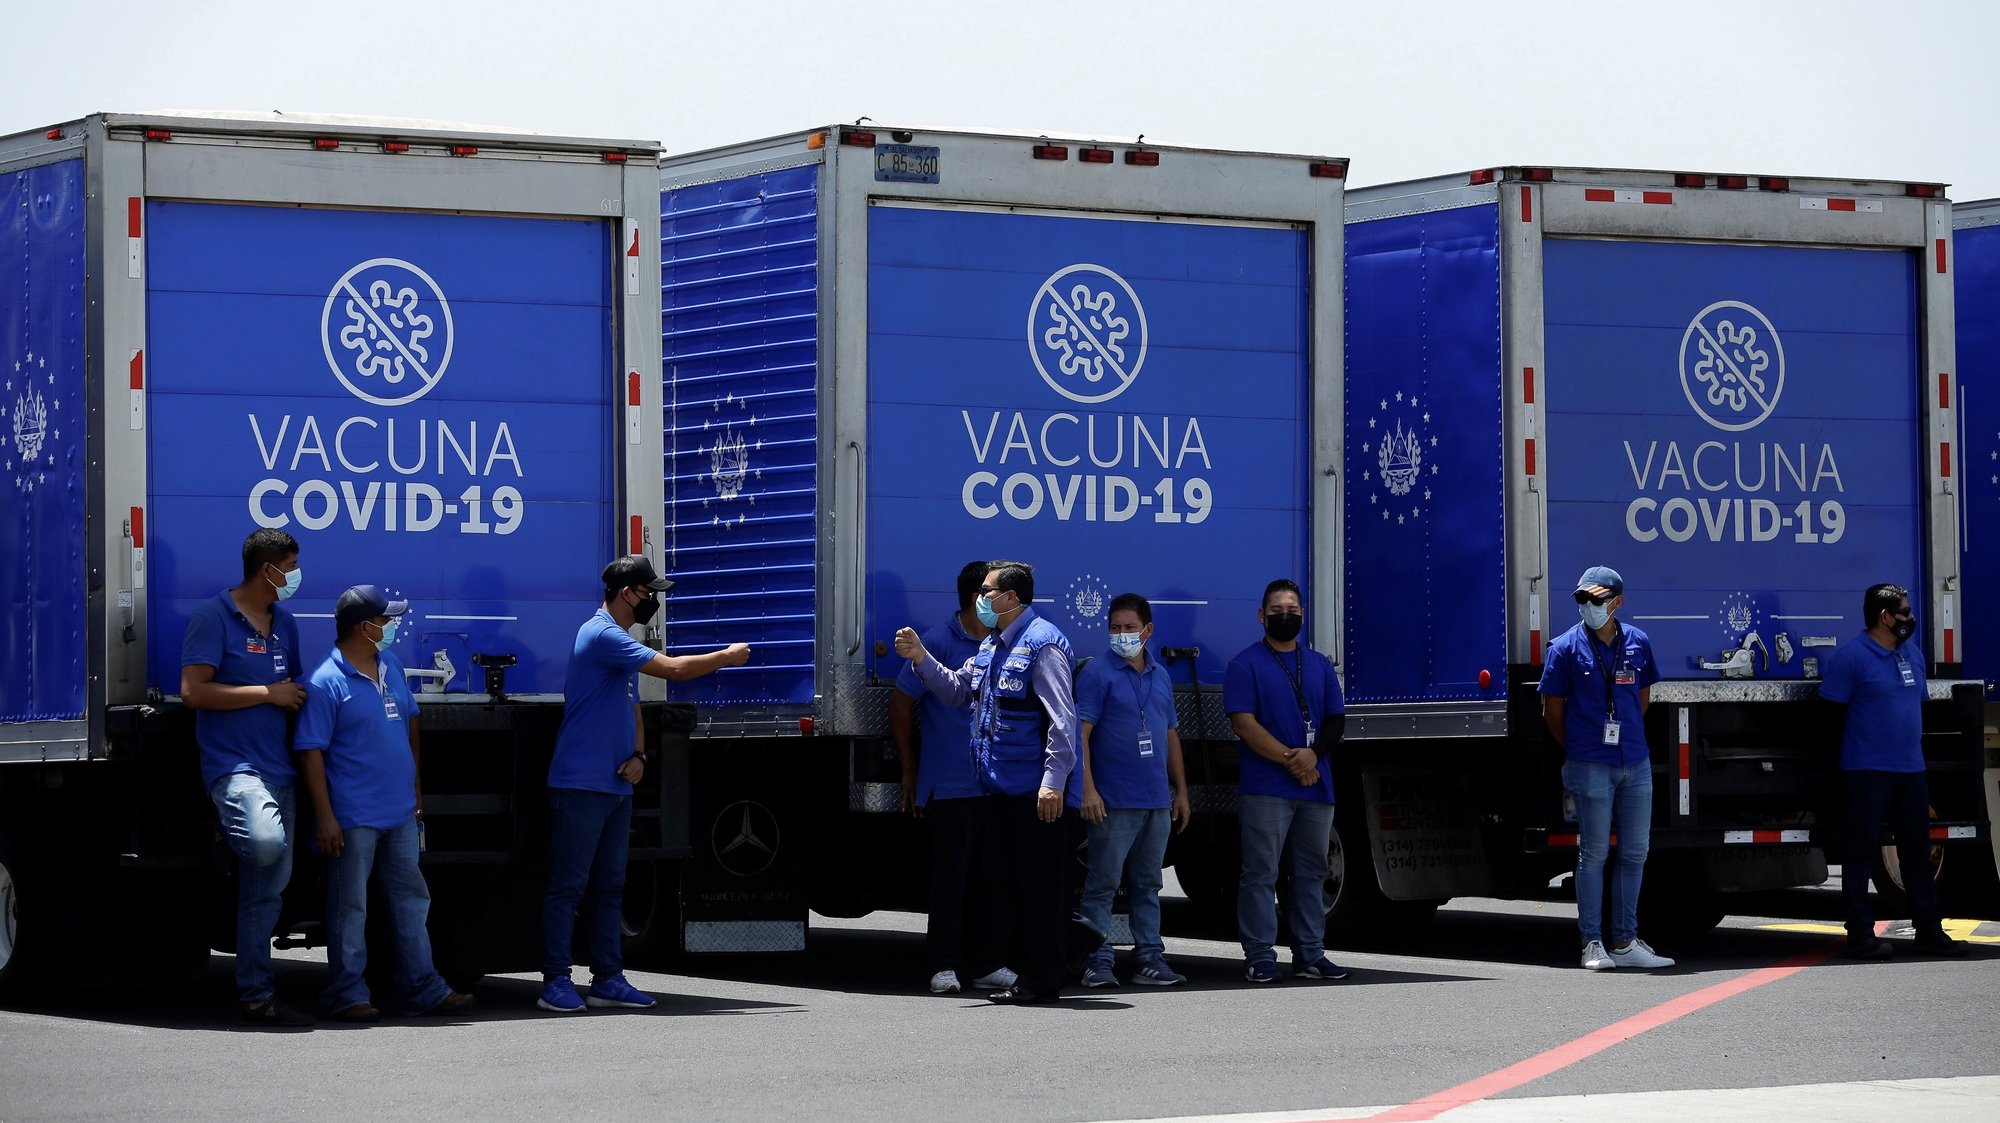 """epa09358764 View of health workers next to the refrigerated trucks that will transport a batch of vaccines, sent by the United States, against COVID-19, at the San Ã""""scar Romero International Airport in San Luis Talpa, El Salvador, 22 July 2021. The United States delivered a second batch of 1.5 million Modern vaccines against the SARS-CoV-2 coronavirus to El Salvador on Thursday, as part of a donation through the Covax system of the World Health Organization (WHO).  EPA/Rodrigo Sura"""